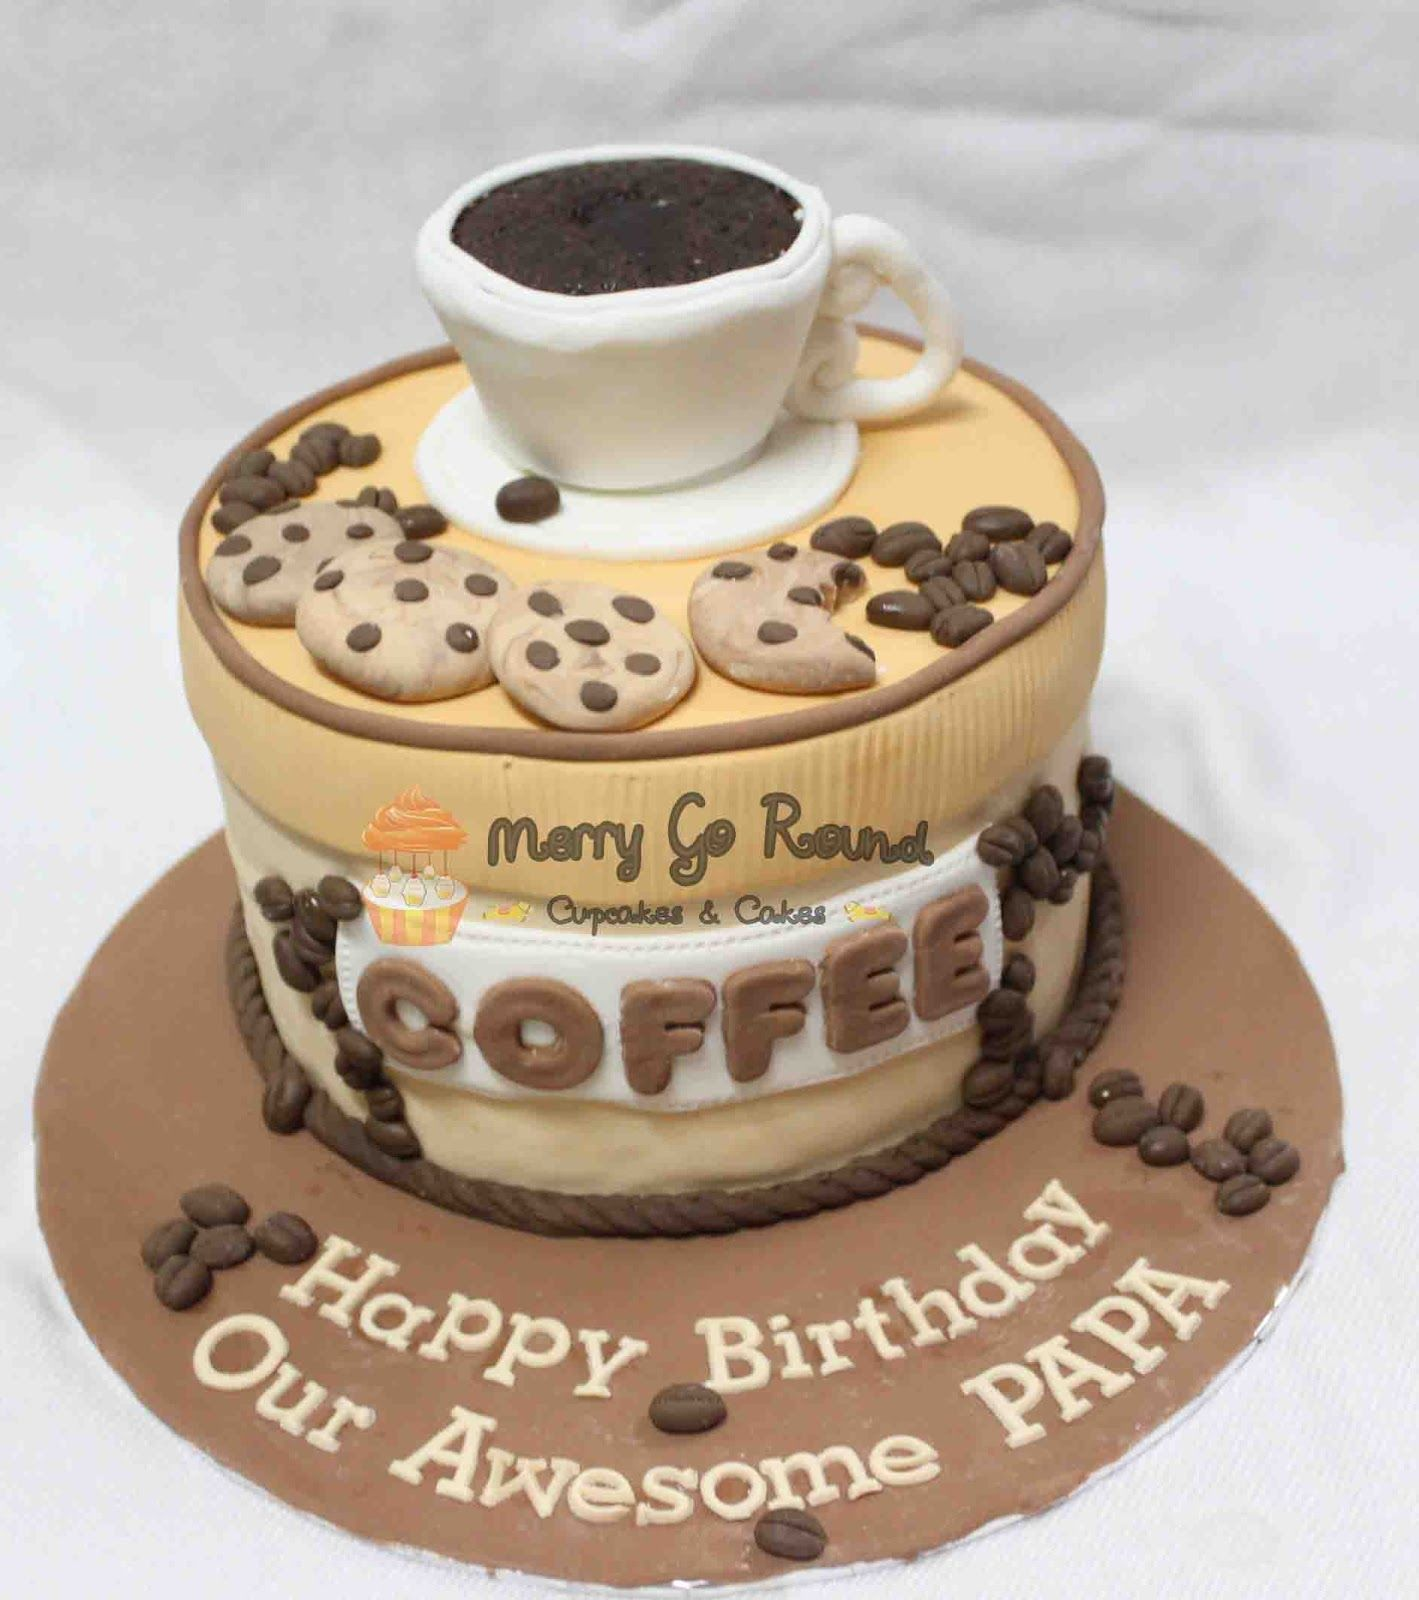 Incredible Coffee Wedding Cakes Merry Go Round Cupcakes Cakes Coffee Funny Birthday Cards Online Elaedamsfinfo